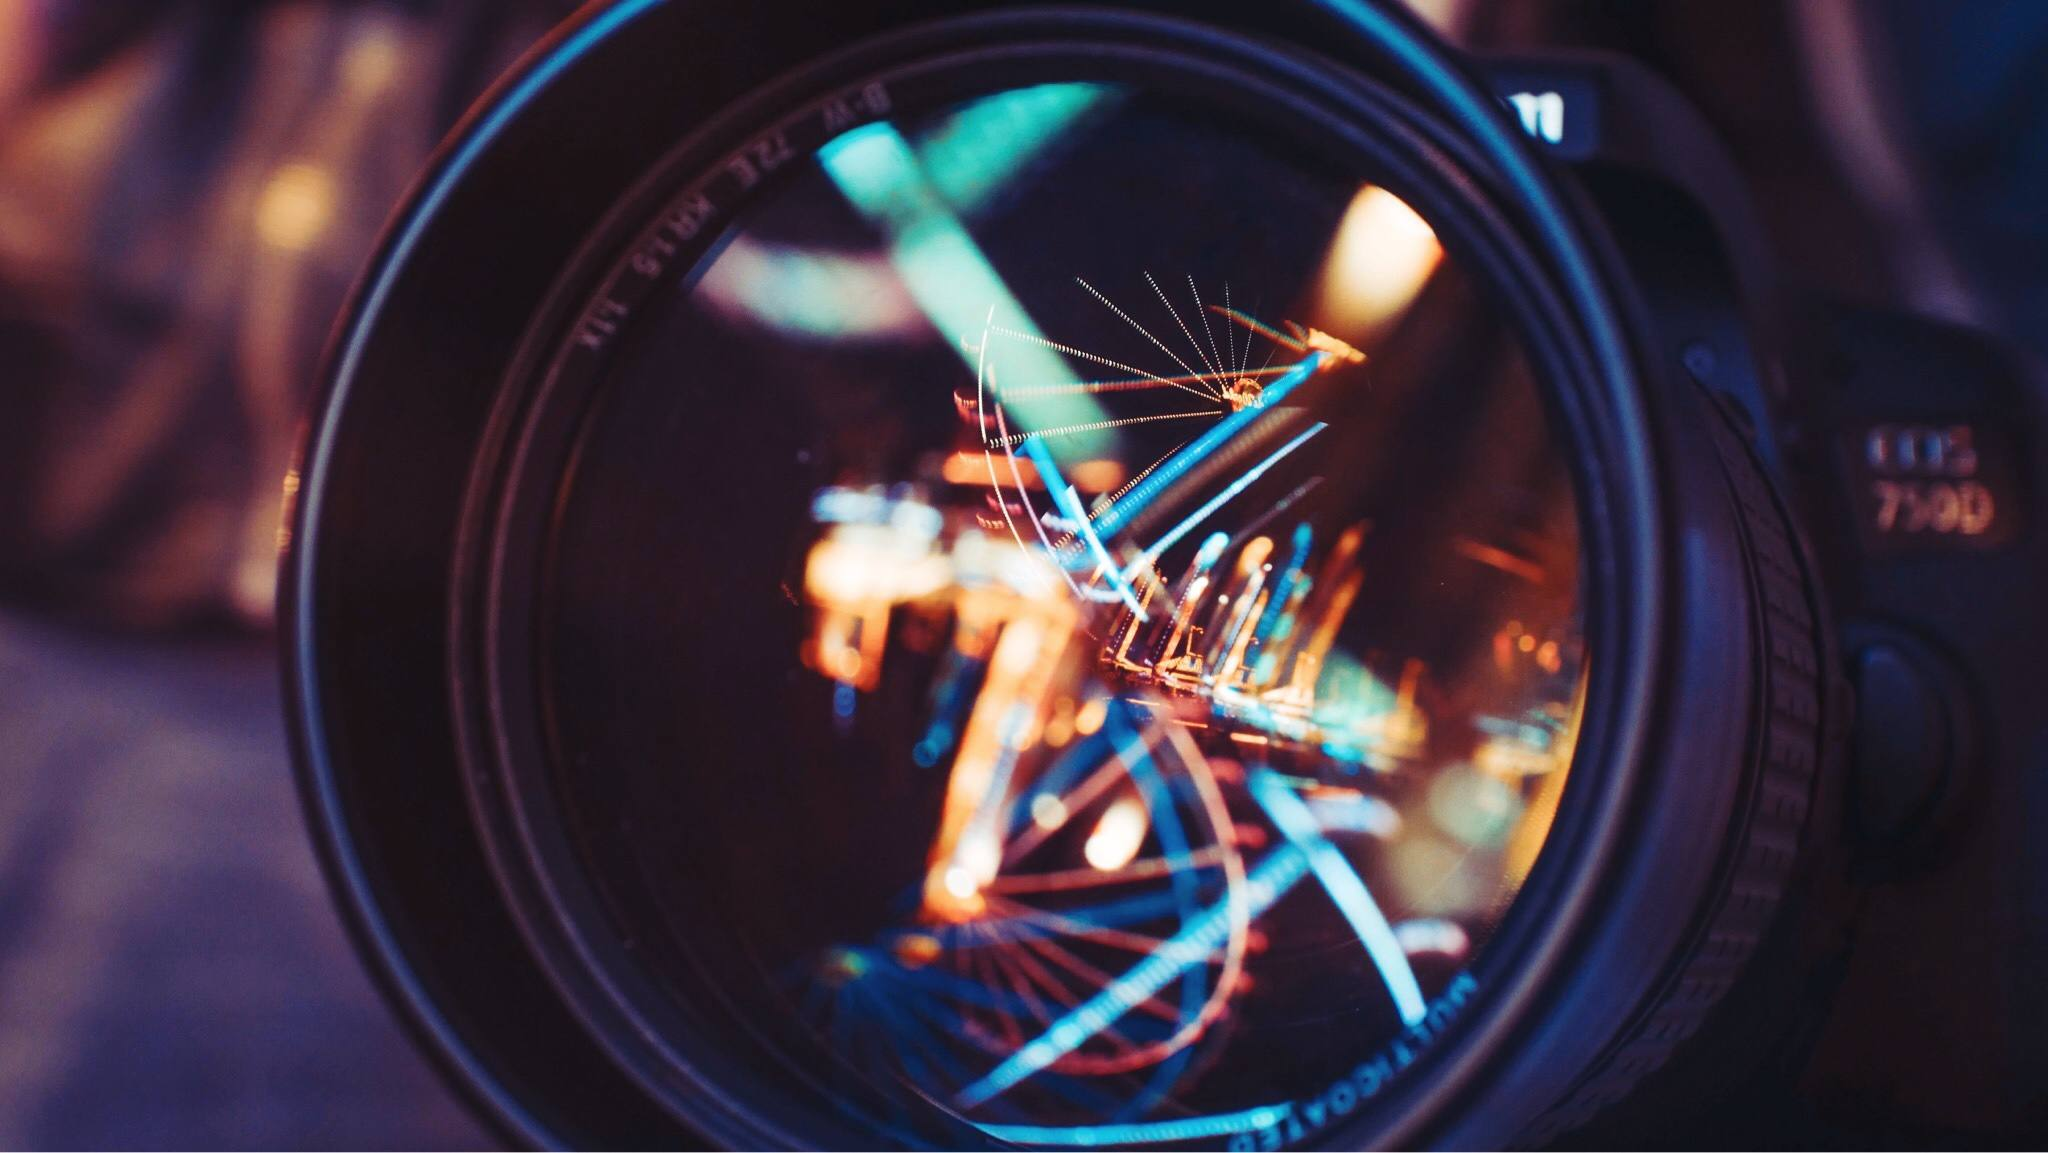 Reflections on a camera lens attached to a Canon DSLR